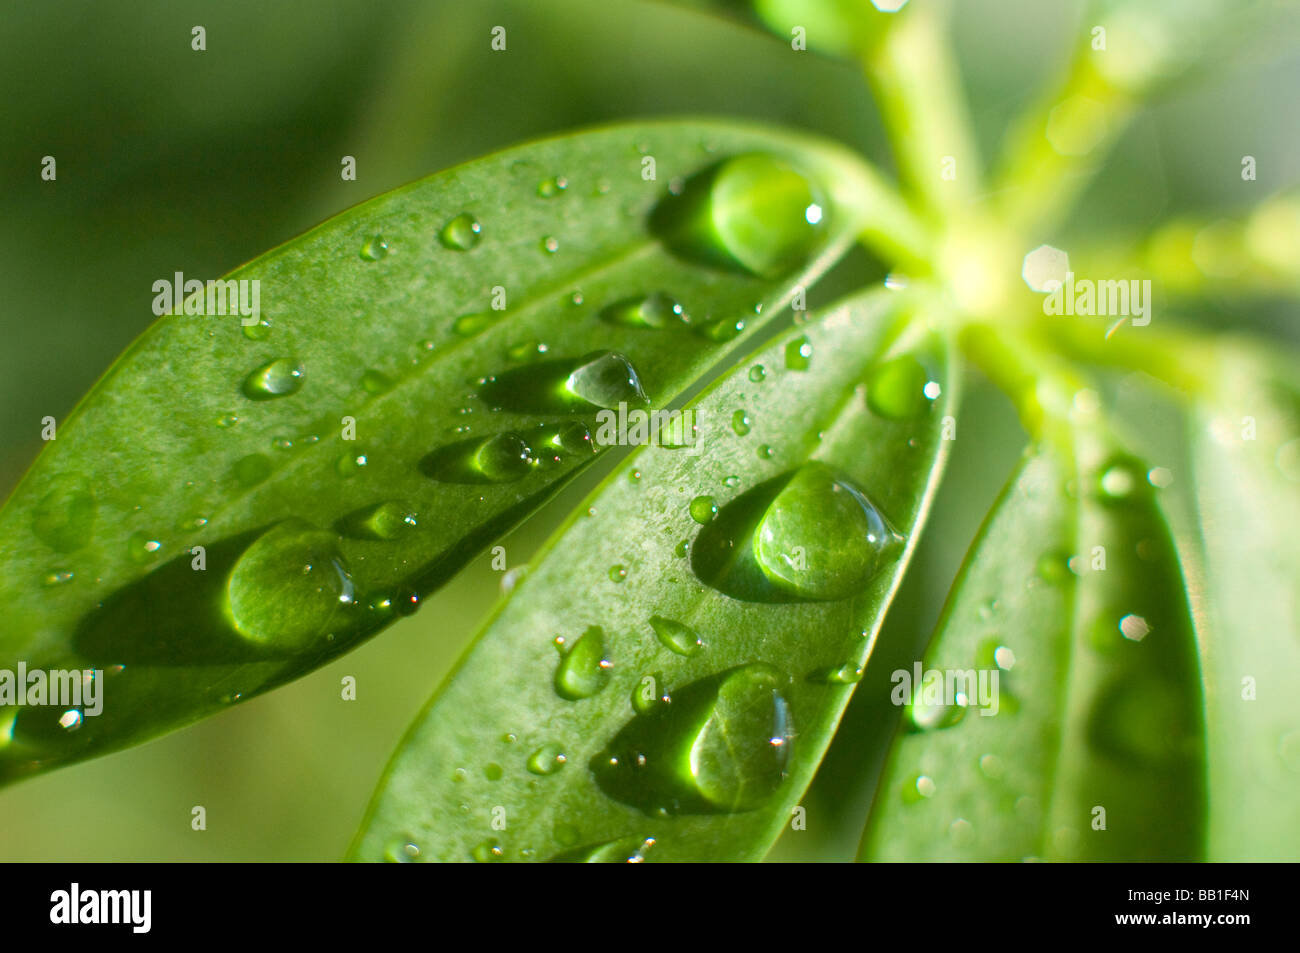 Water drops on a Schefflera plant leaf. - Stock Image